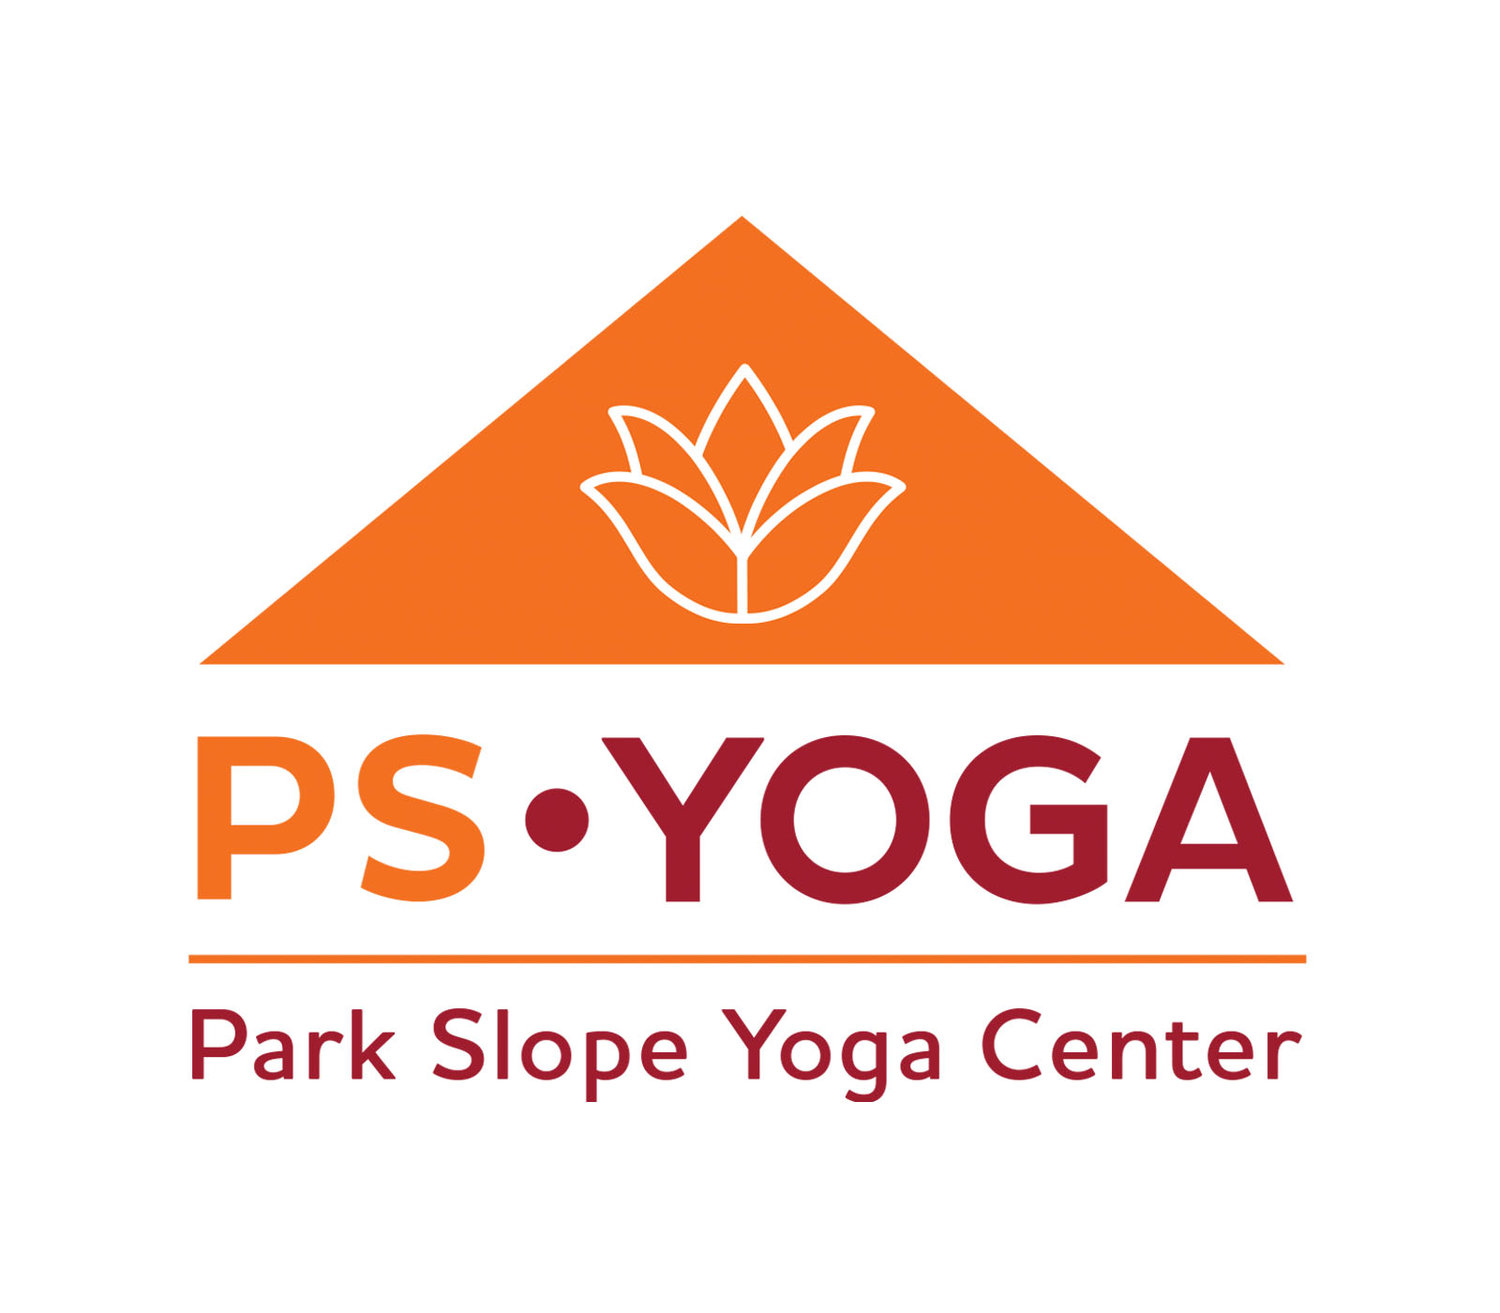 Park Slope Yoga Center